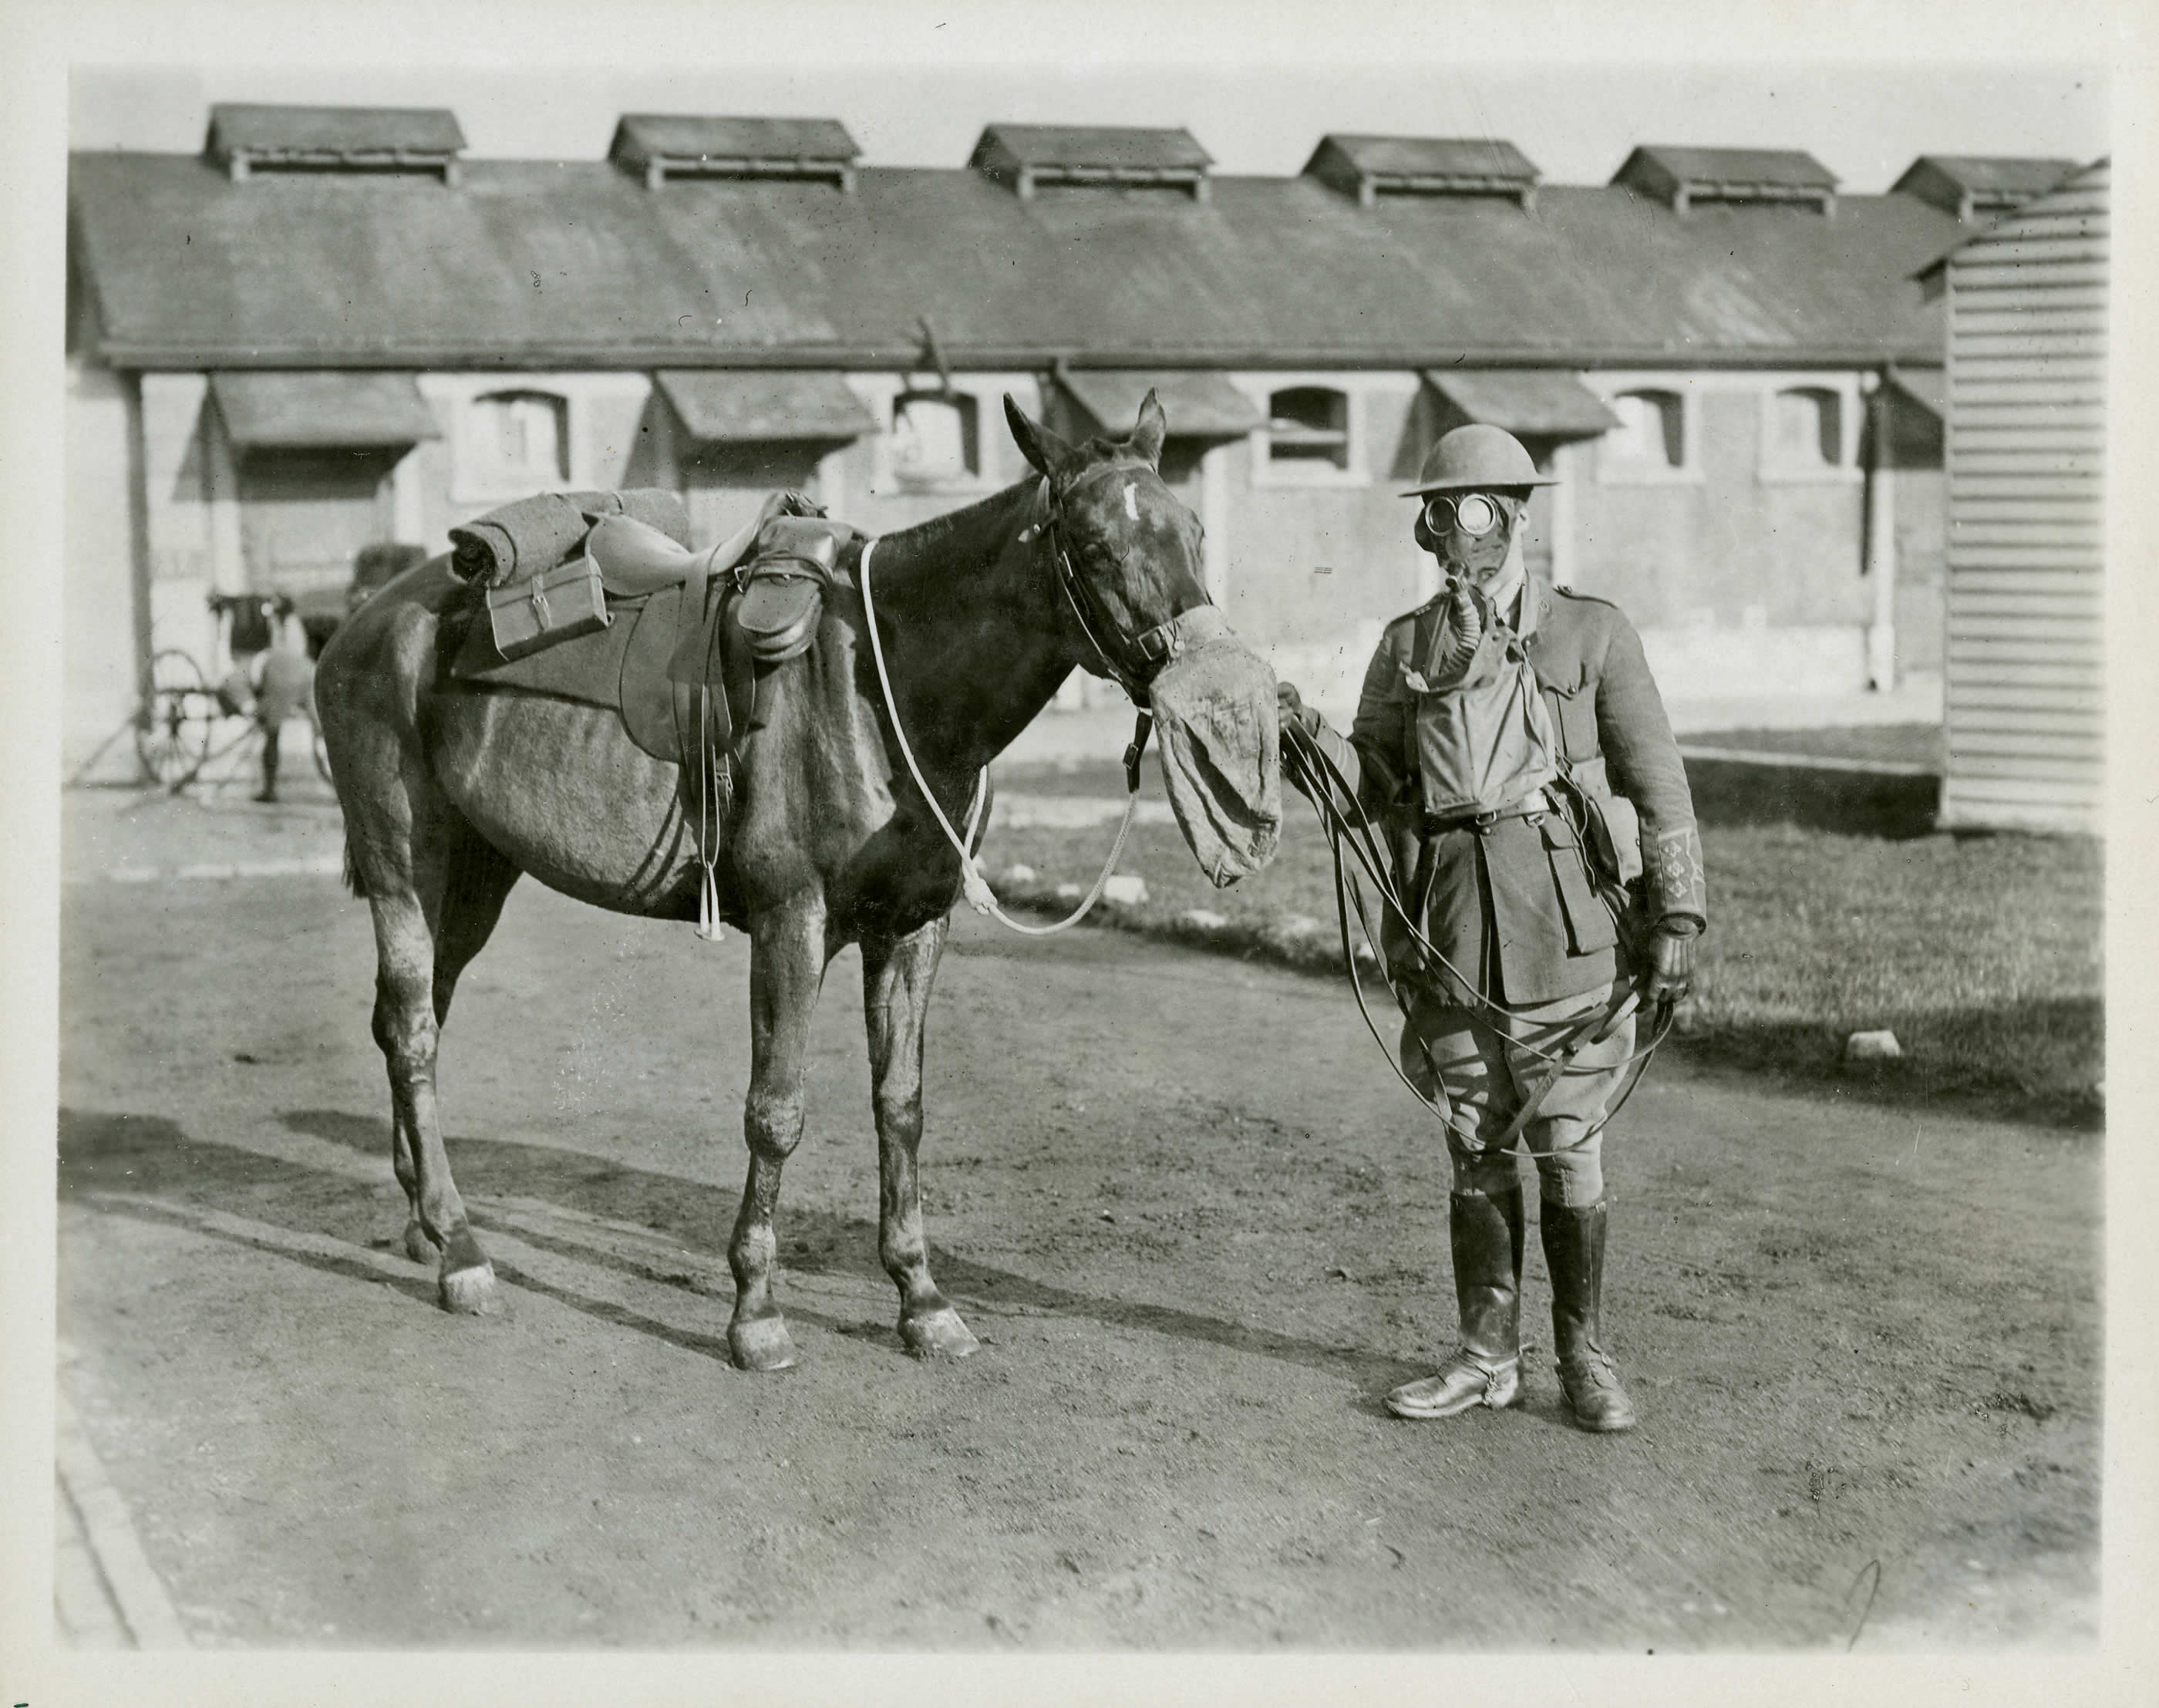 Protecting Soldiers and Horses